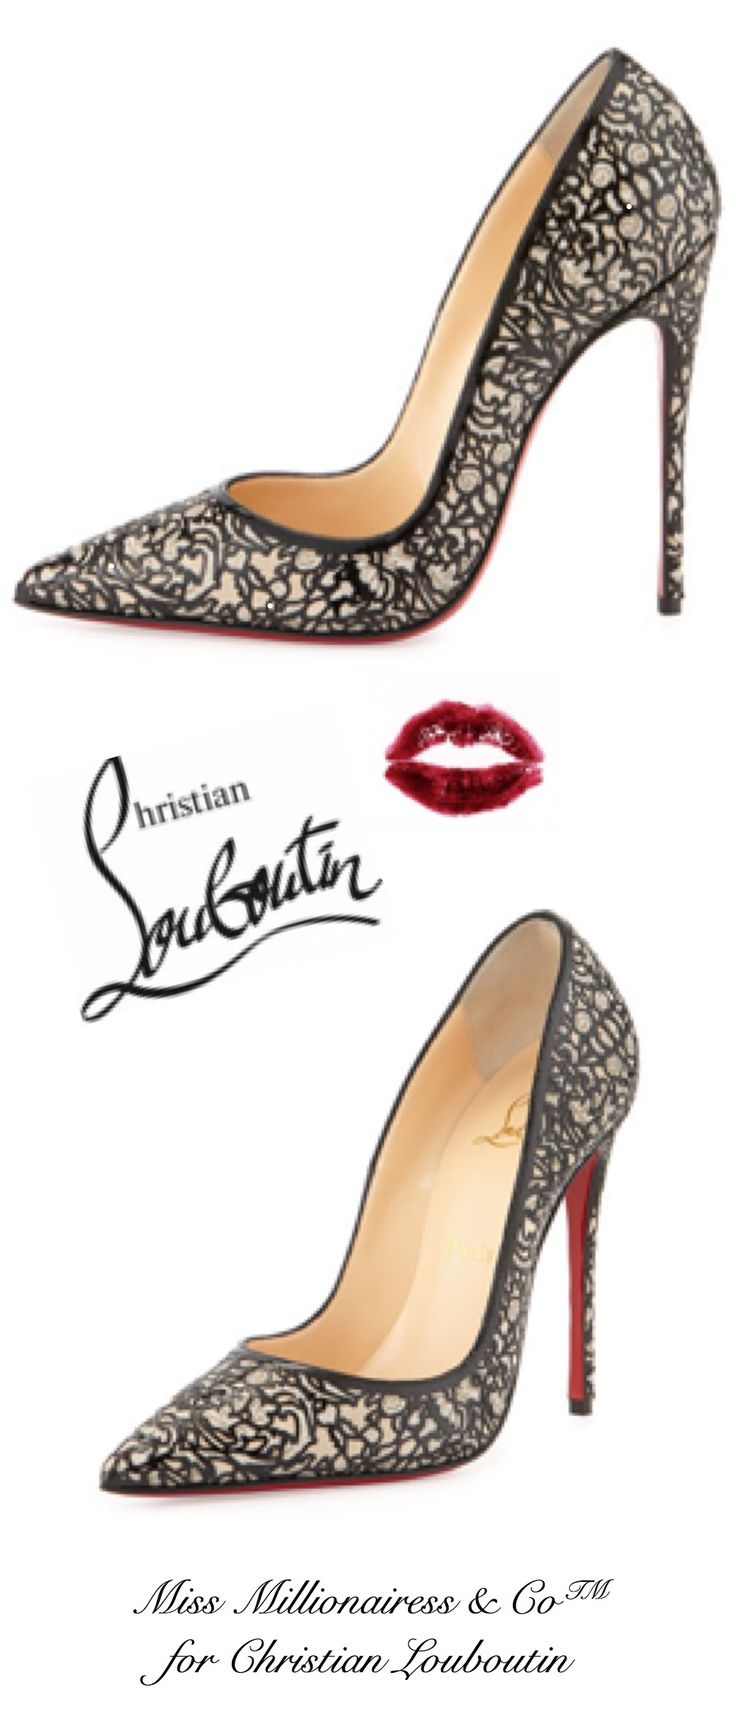 Find this Pin and more on Christian louboutin. 2015 Christian Louboutin  Shoes ...